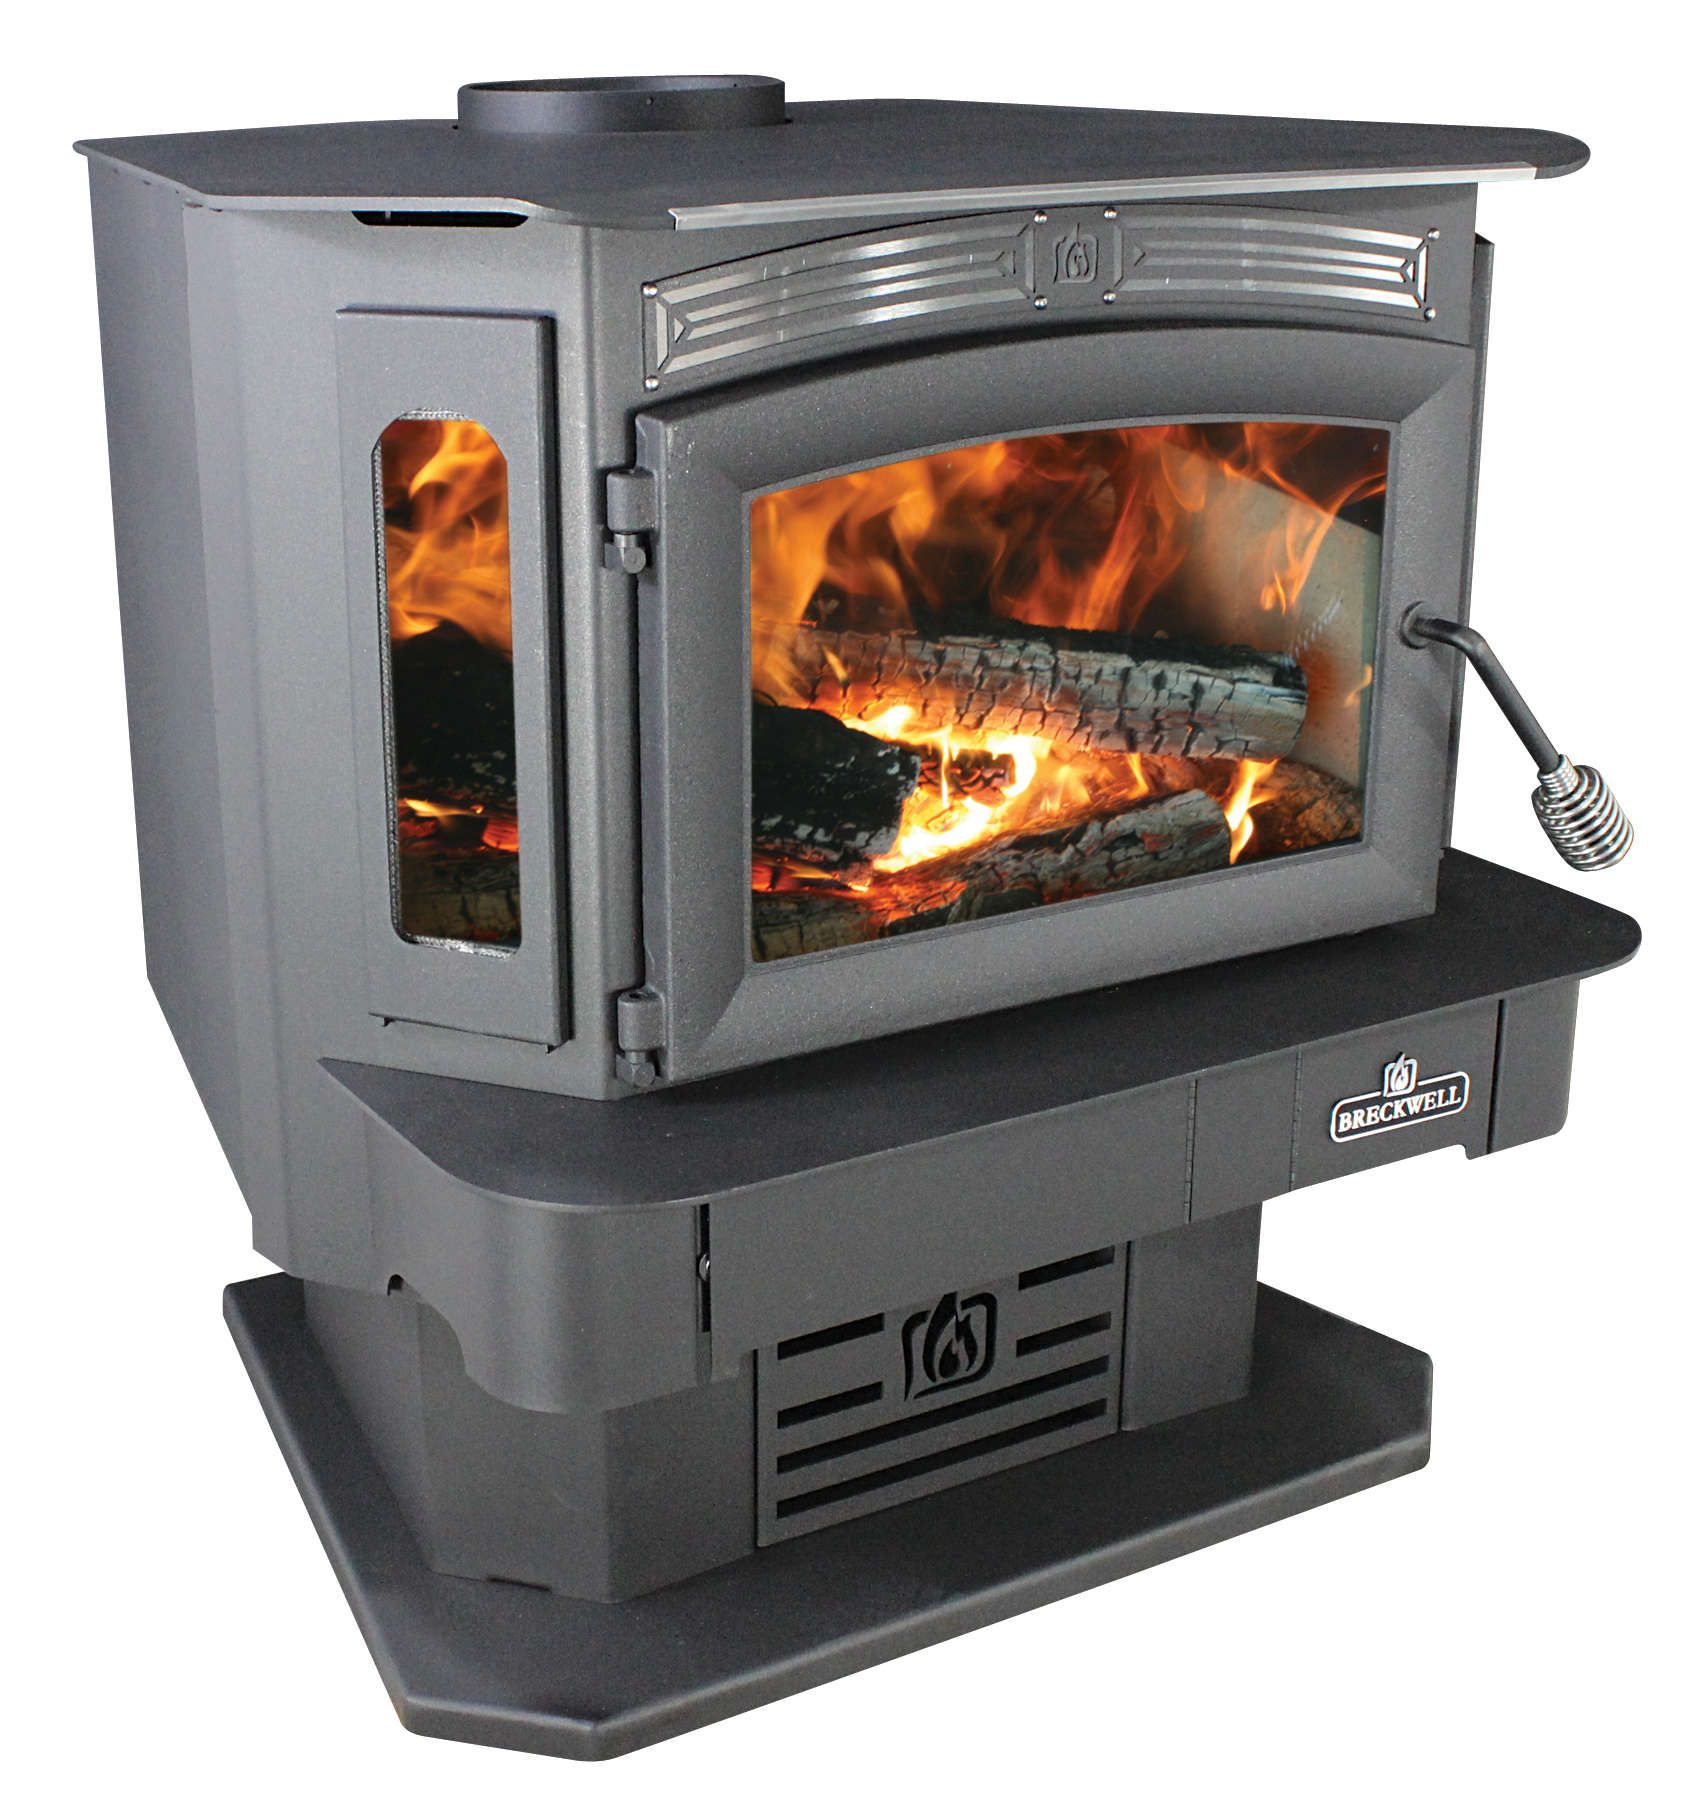 SW940P angle left wood burning stove repair & replacement parts online buck stove clayton wood furnace wiring diagram at honlapkeszites.co